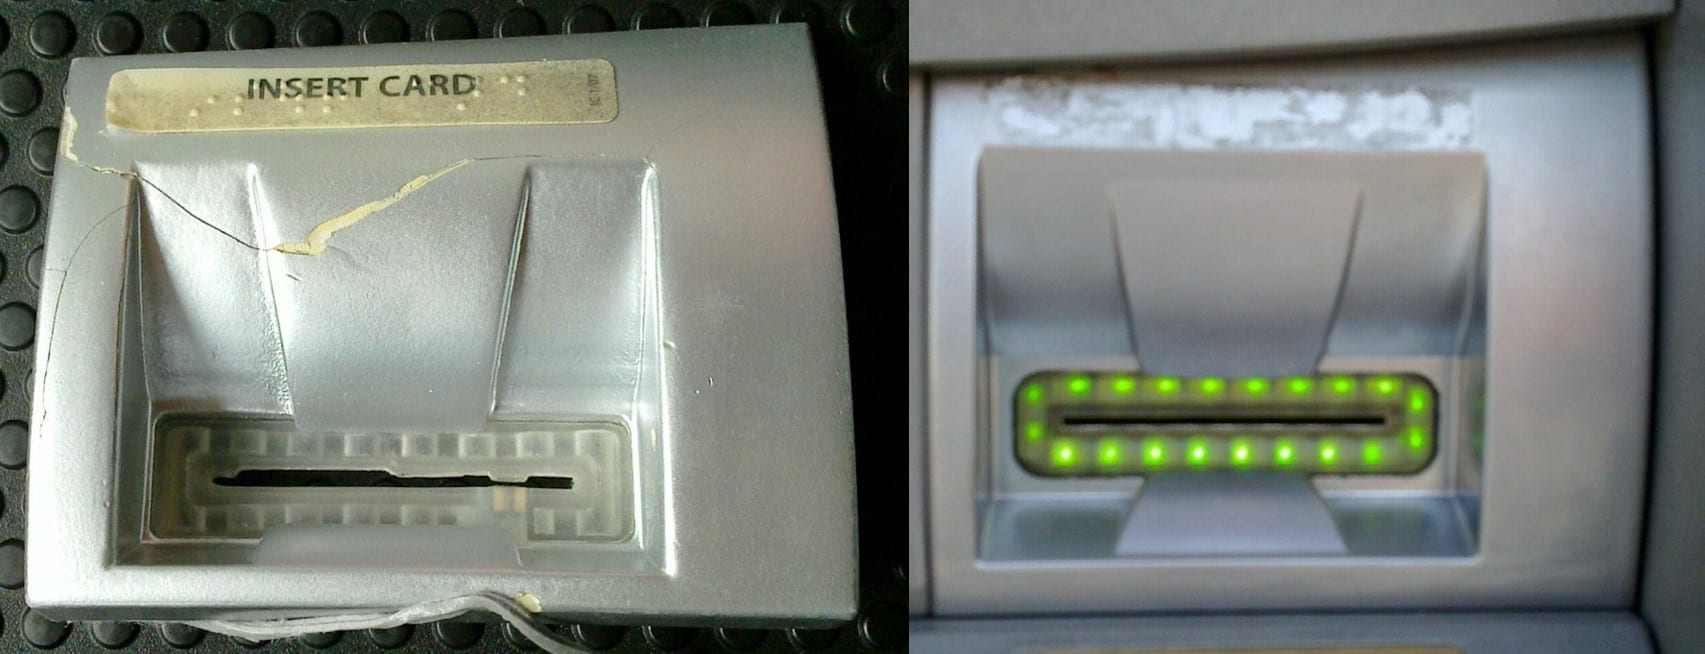 Skimmer on (left) and off (right); images 2.1 Front Overview of Skimmer (left) and 1.2 ATM Card Reader Slot, courtesy Aaron Poffenberger; via Flickr, CC BY 2.0, joined two images into one.